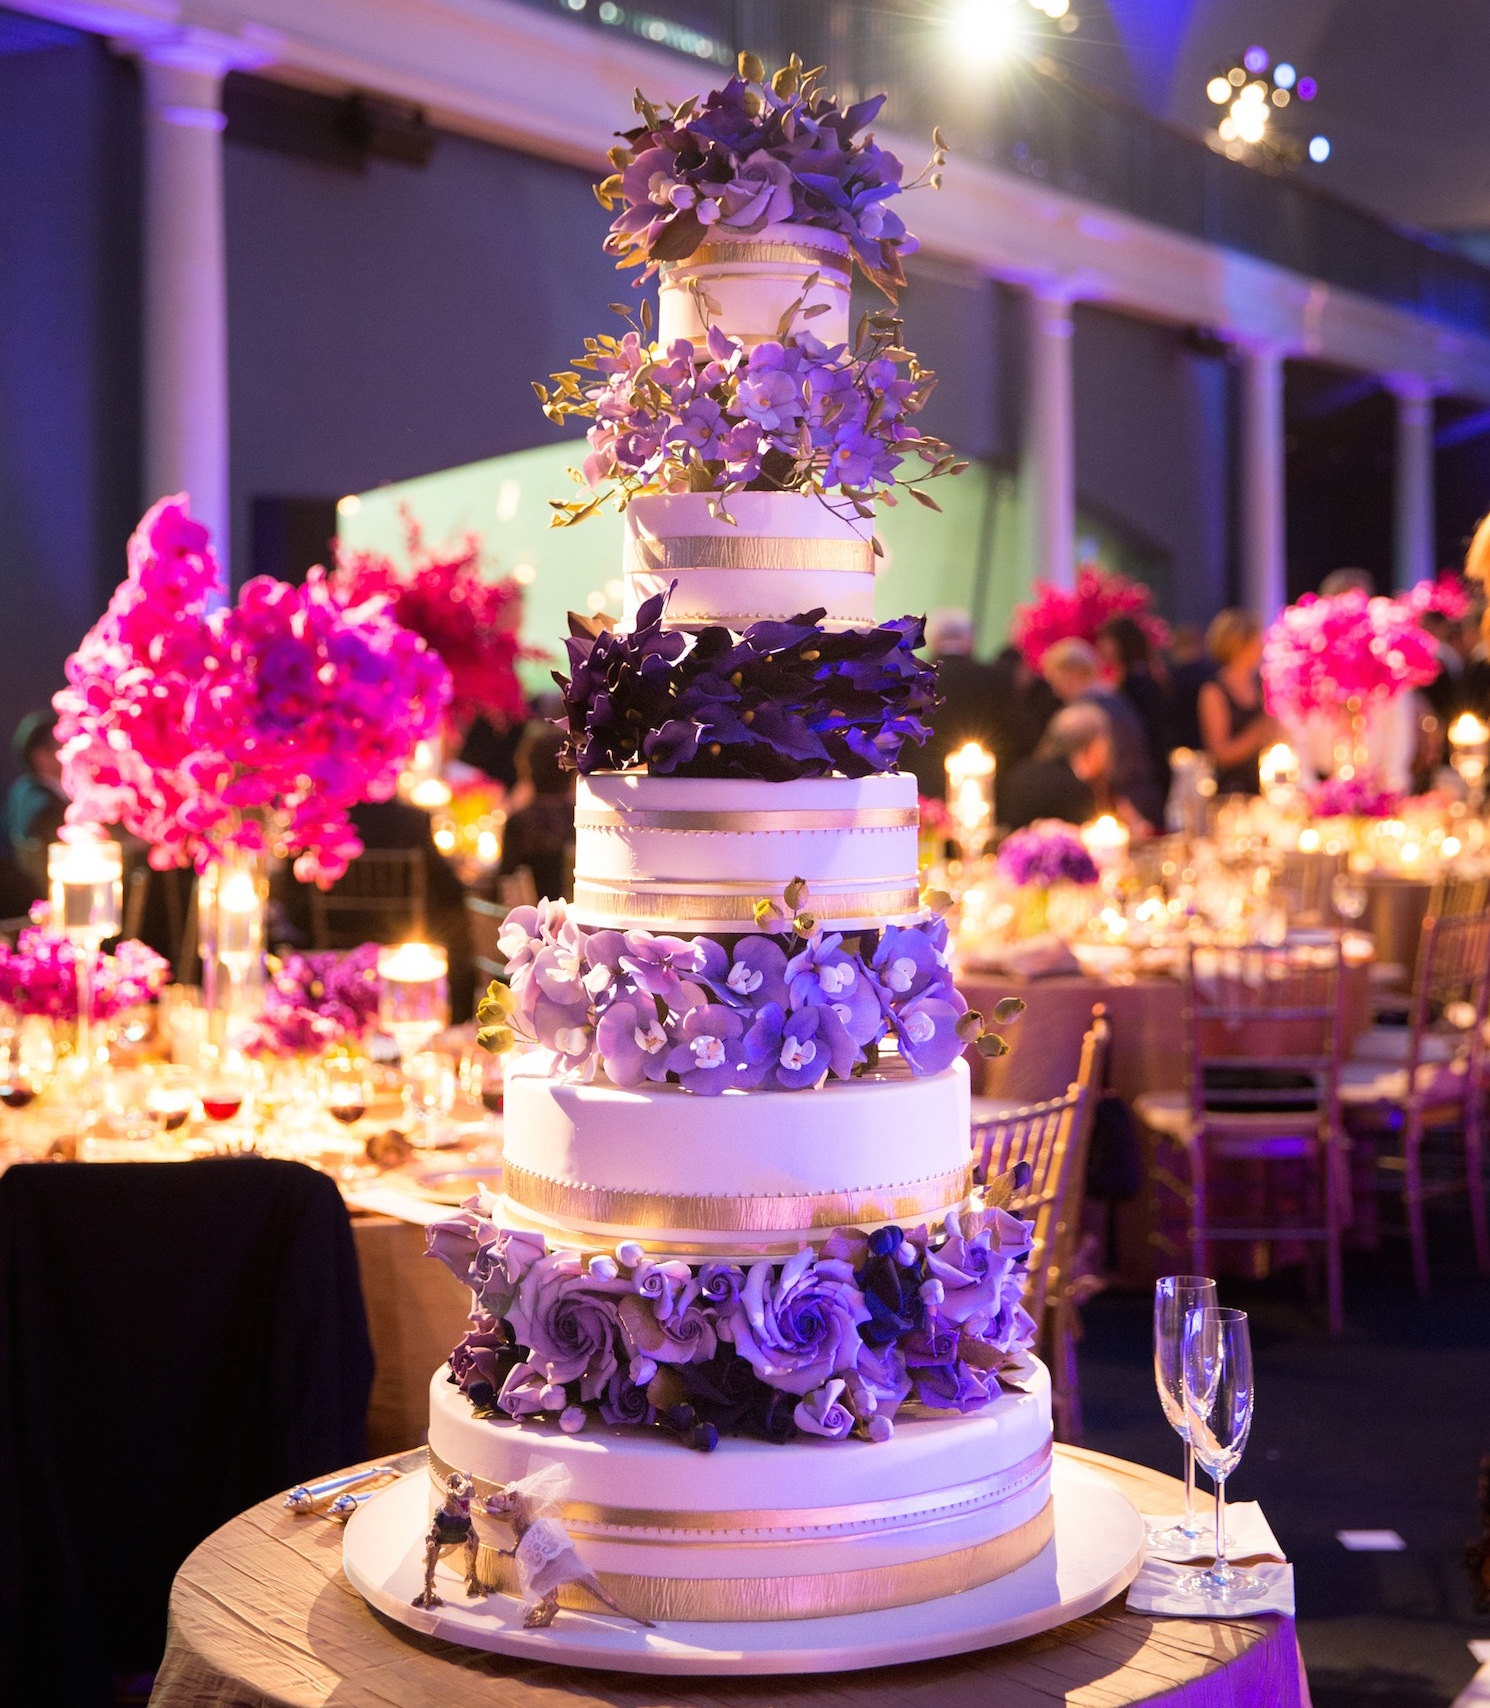 White and gold wedding cake with purple sugar flower tiers